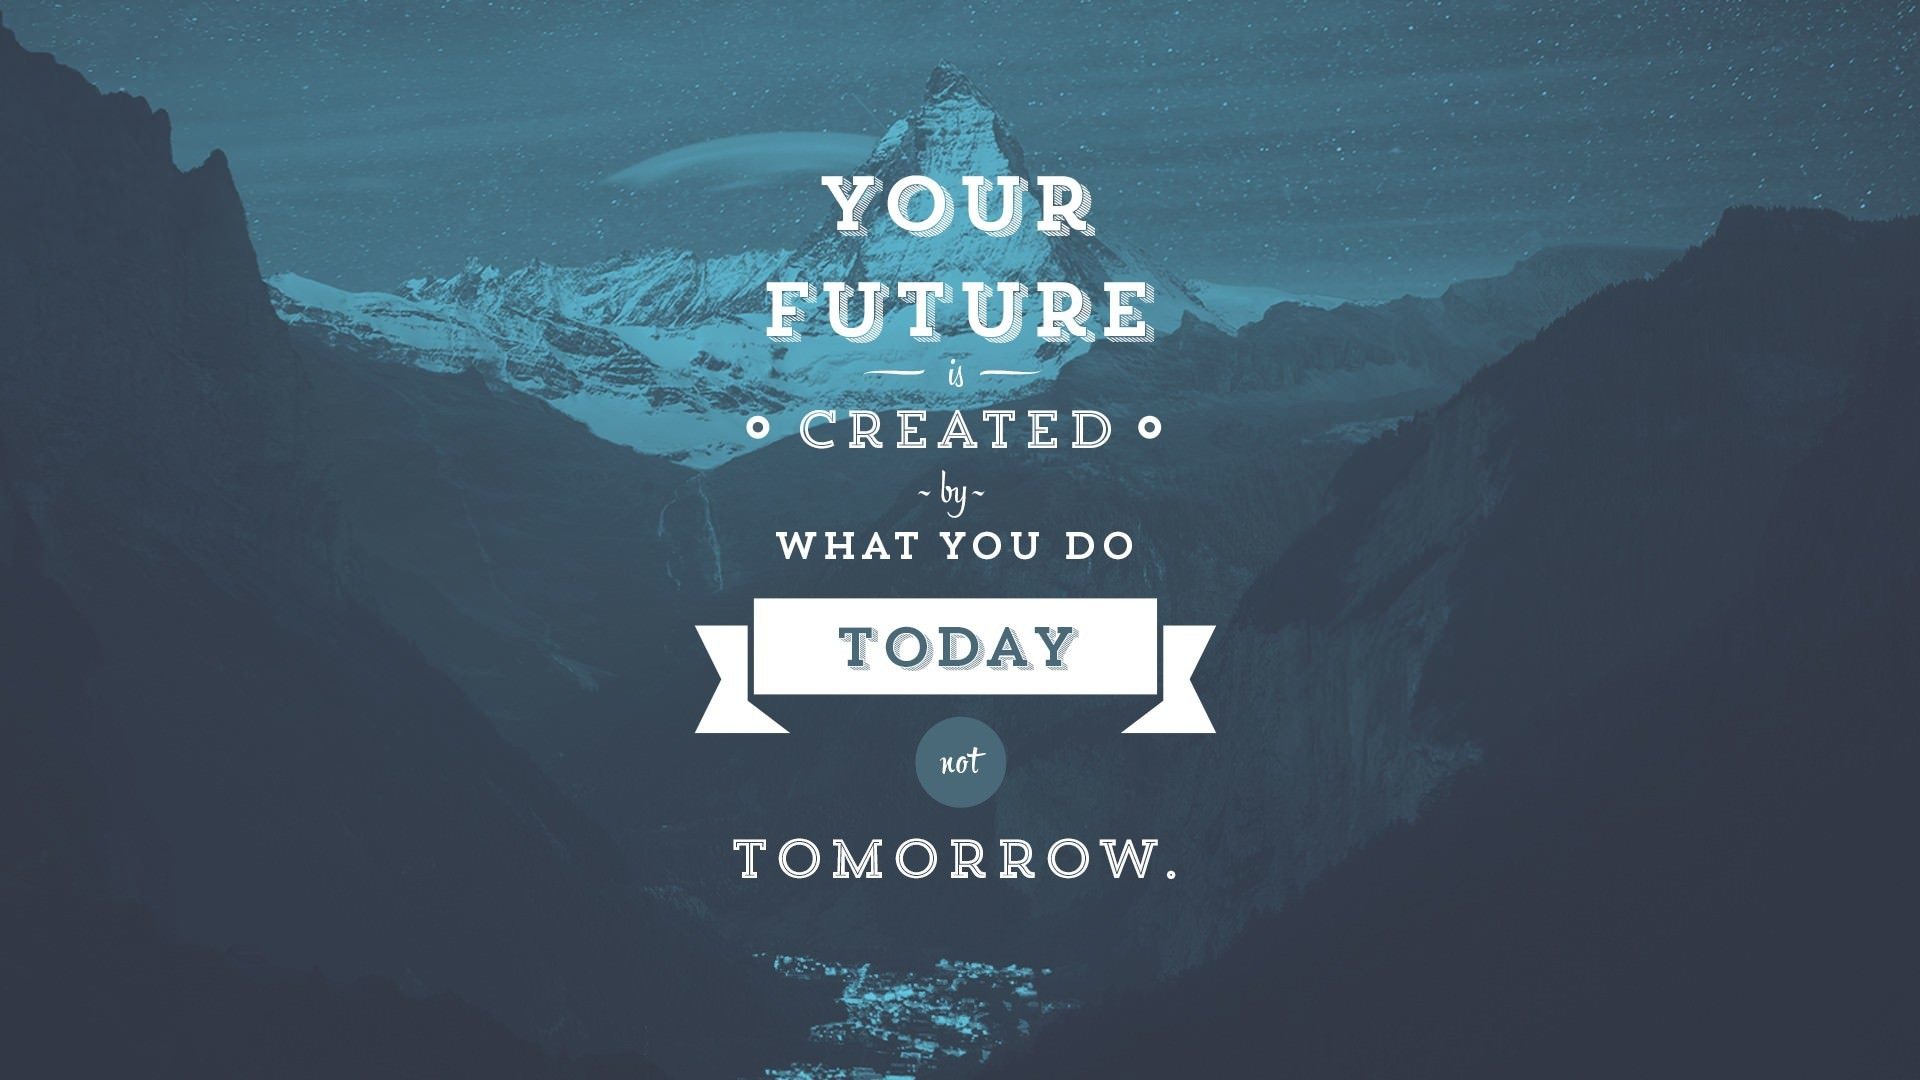 1920x1080 Your future is created by what you do today not tomorrow. Work hard dream  big.